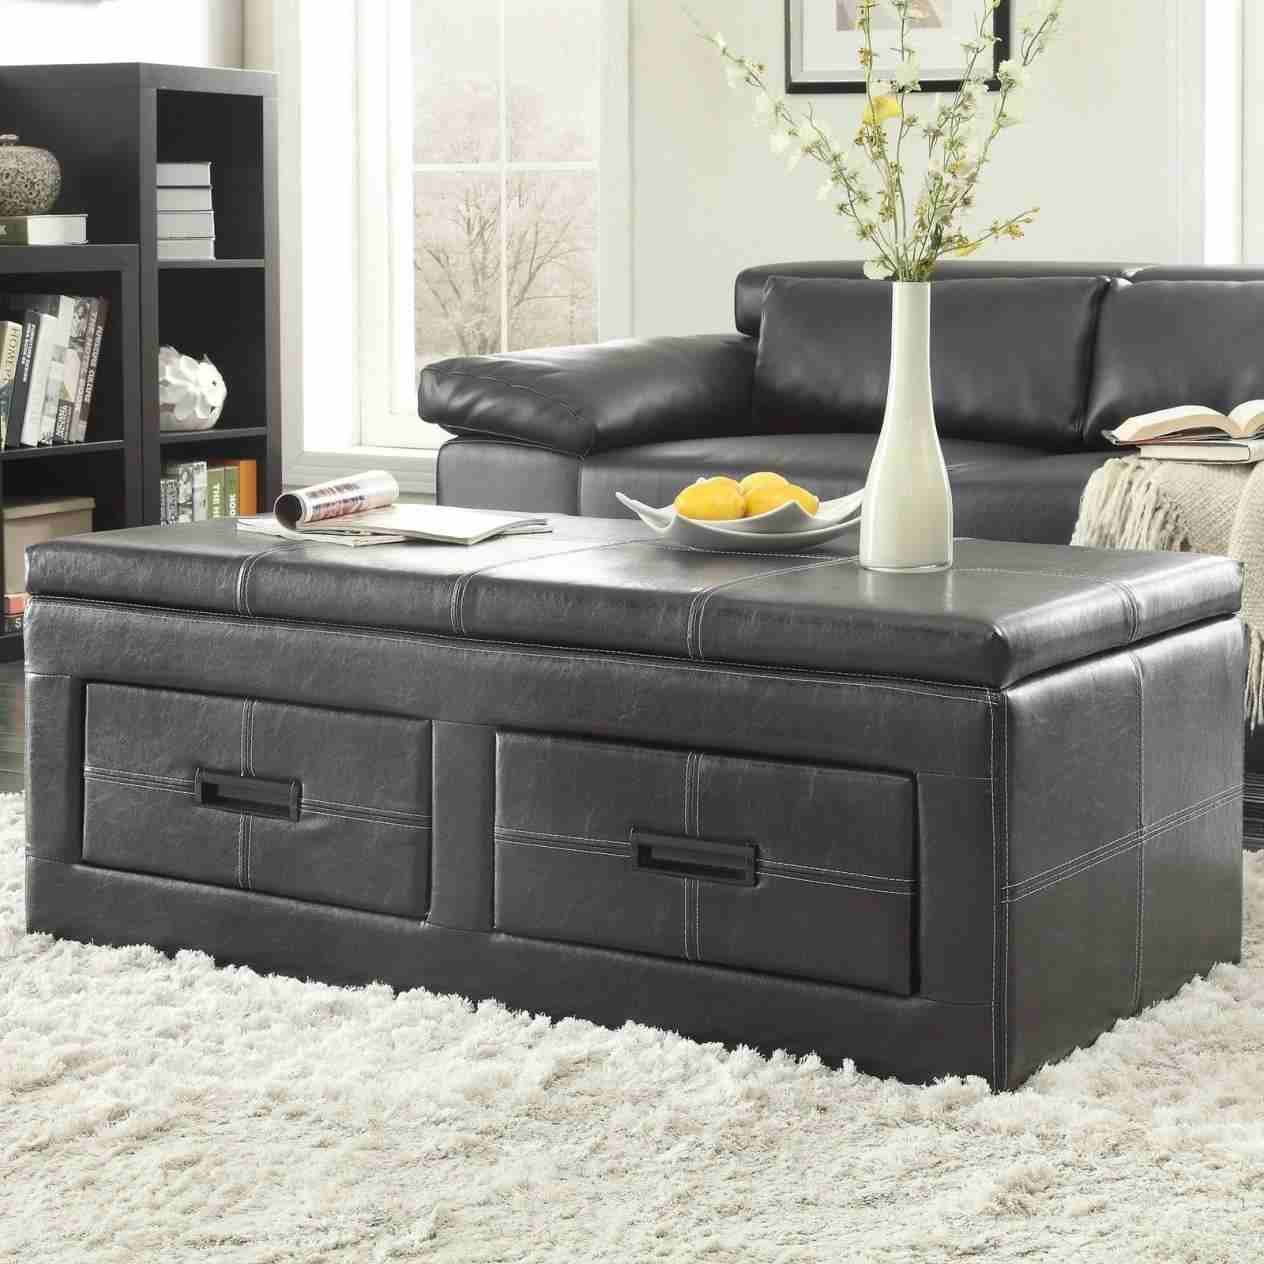 Baine Coffee Table With Lift Top Gallery Of Leather Lift Top pertaining to sizing 1264 X 1264